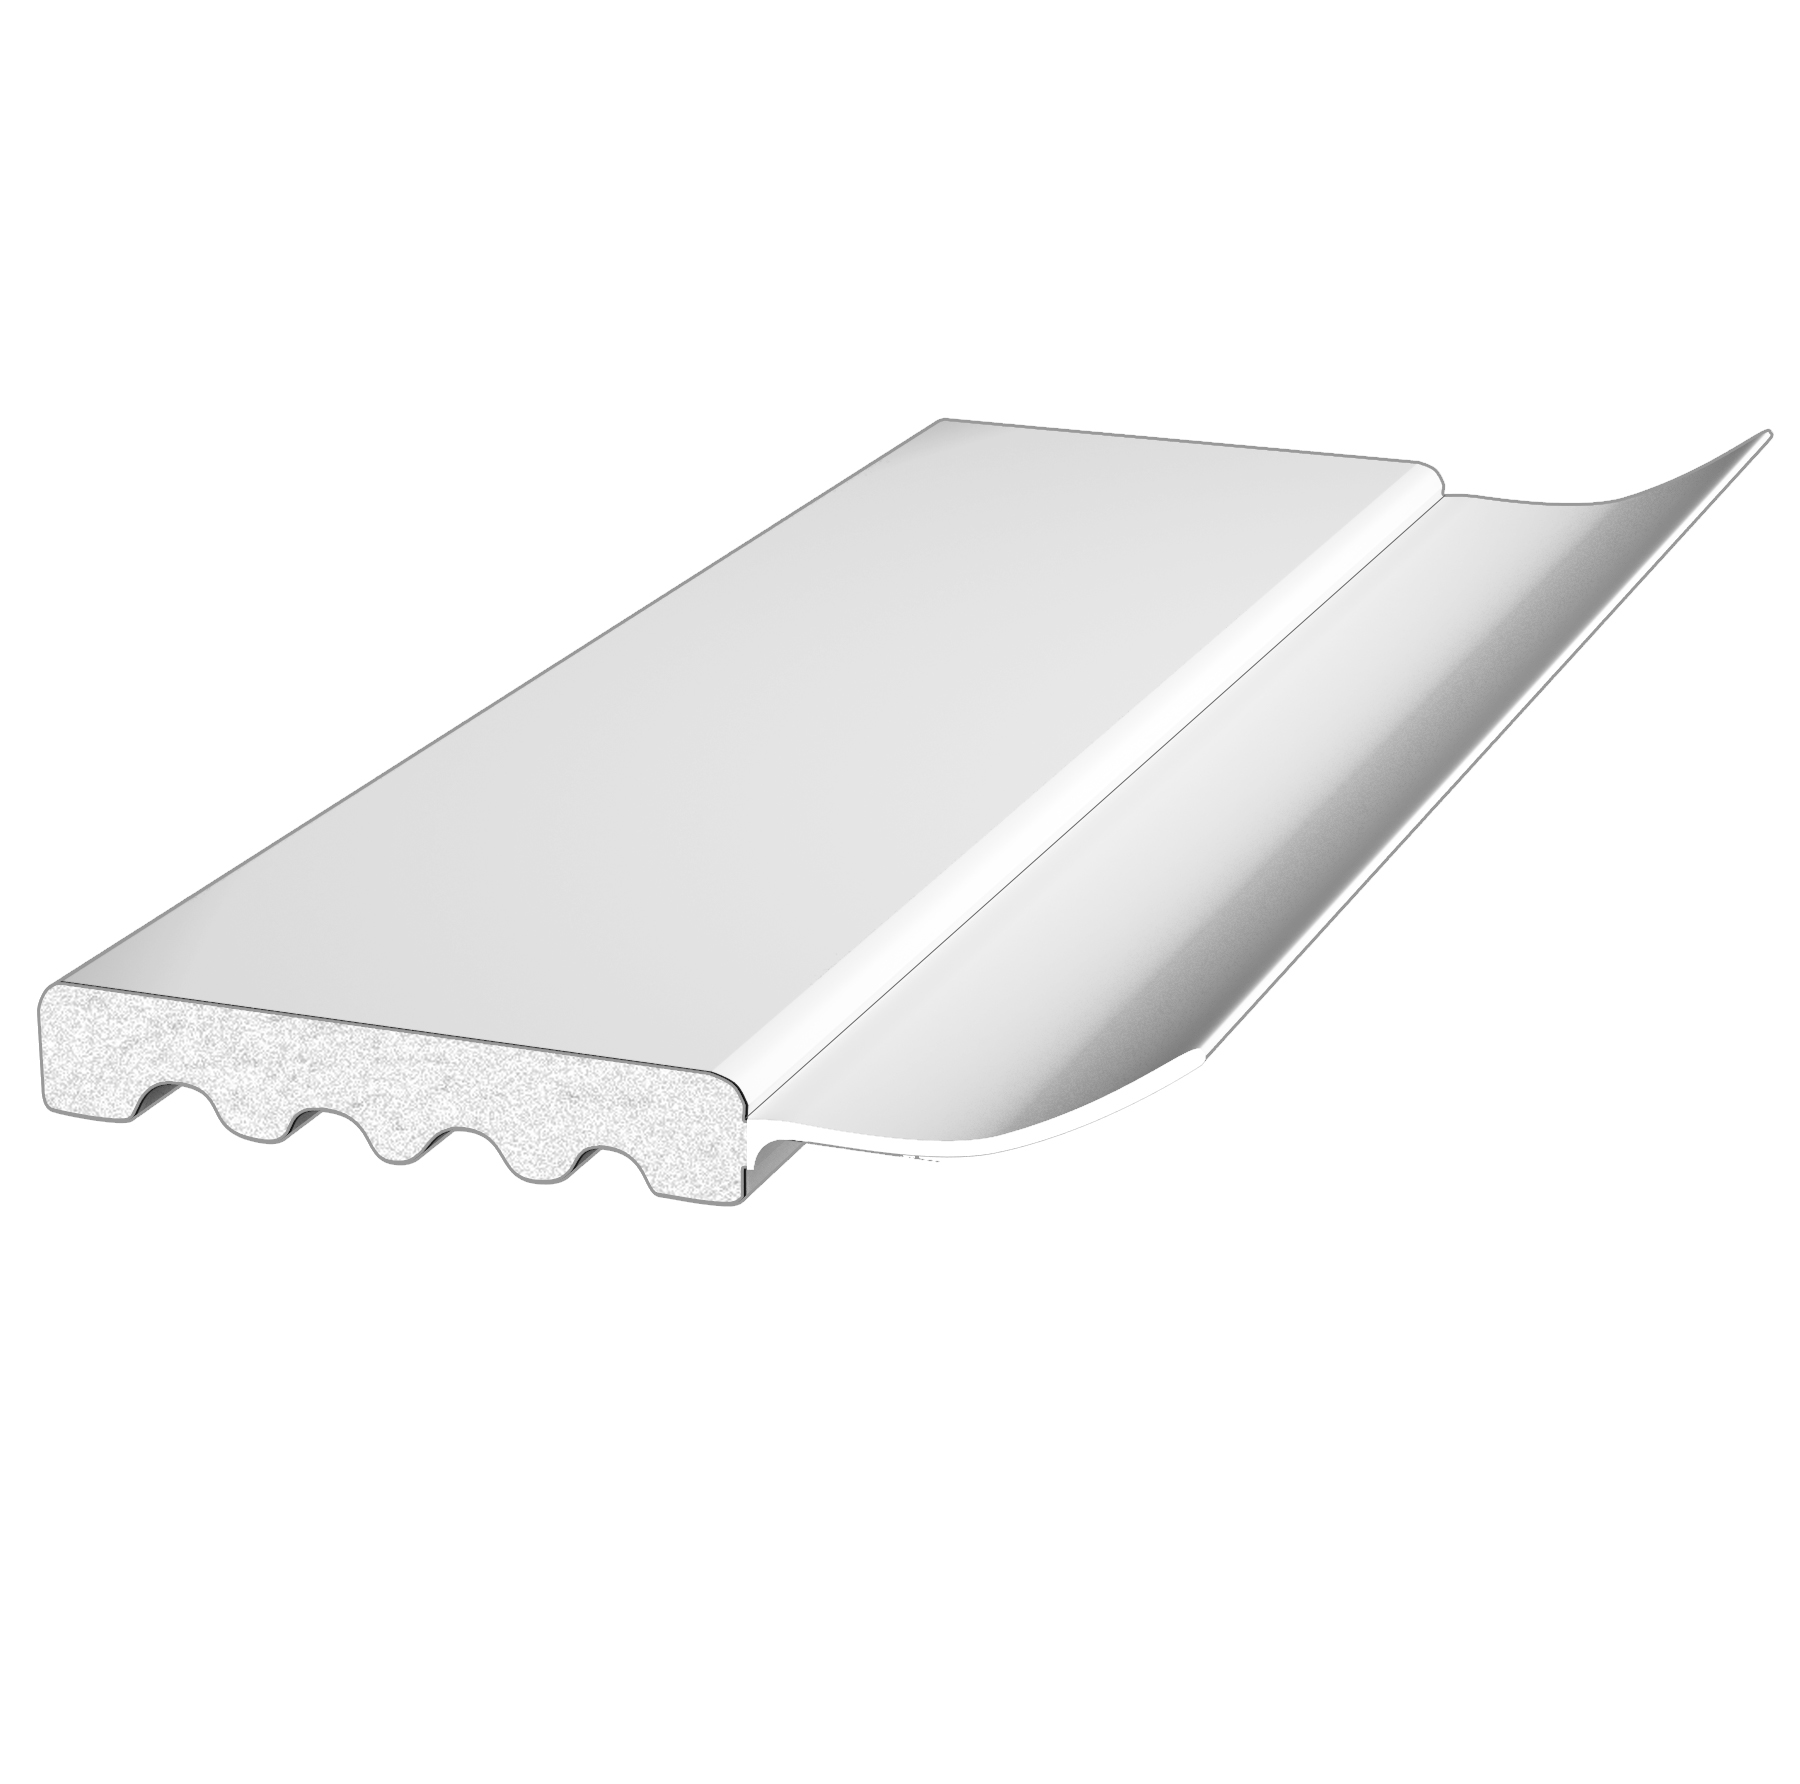 PALIGHT WHITE PVC GARAGE DOOR STOP